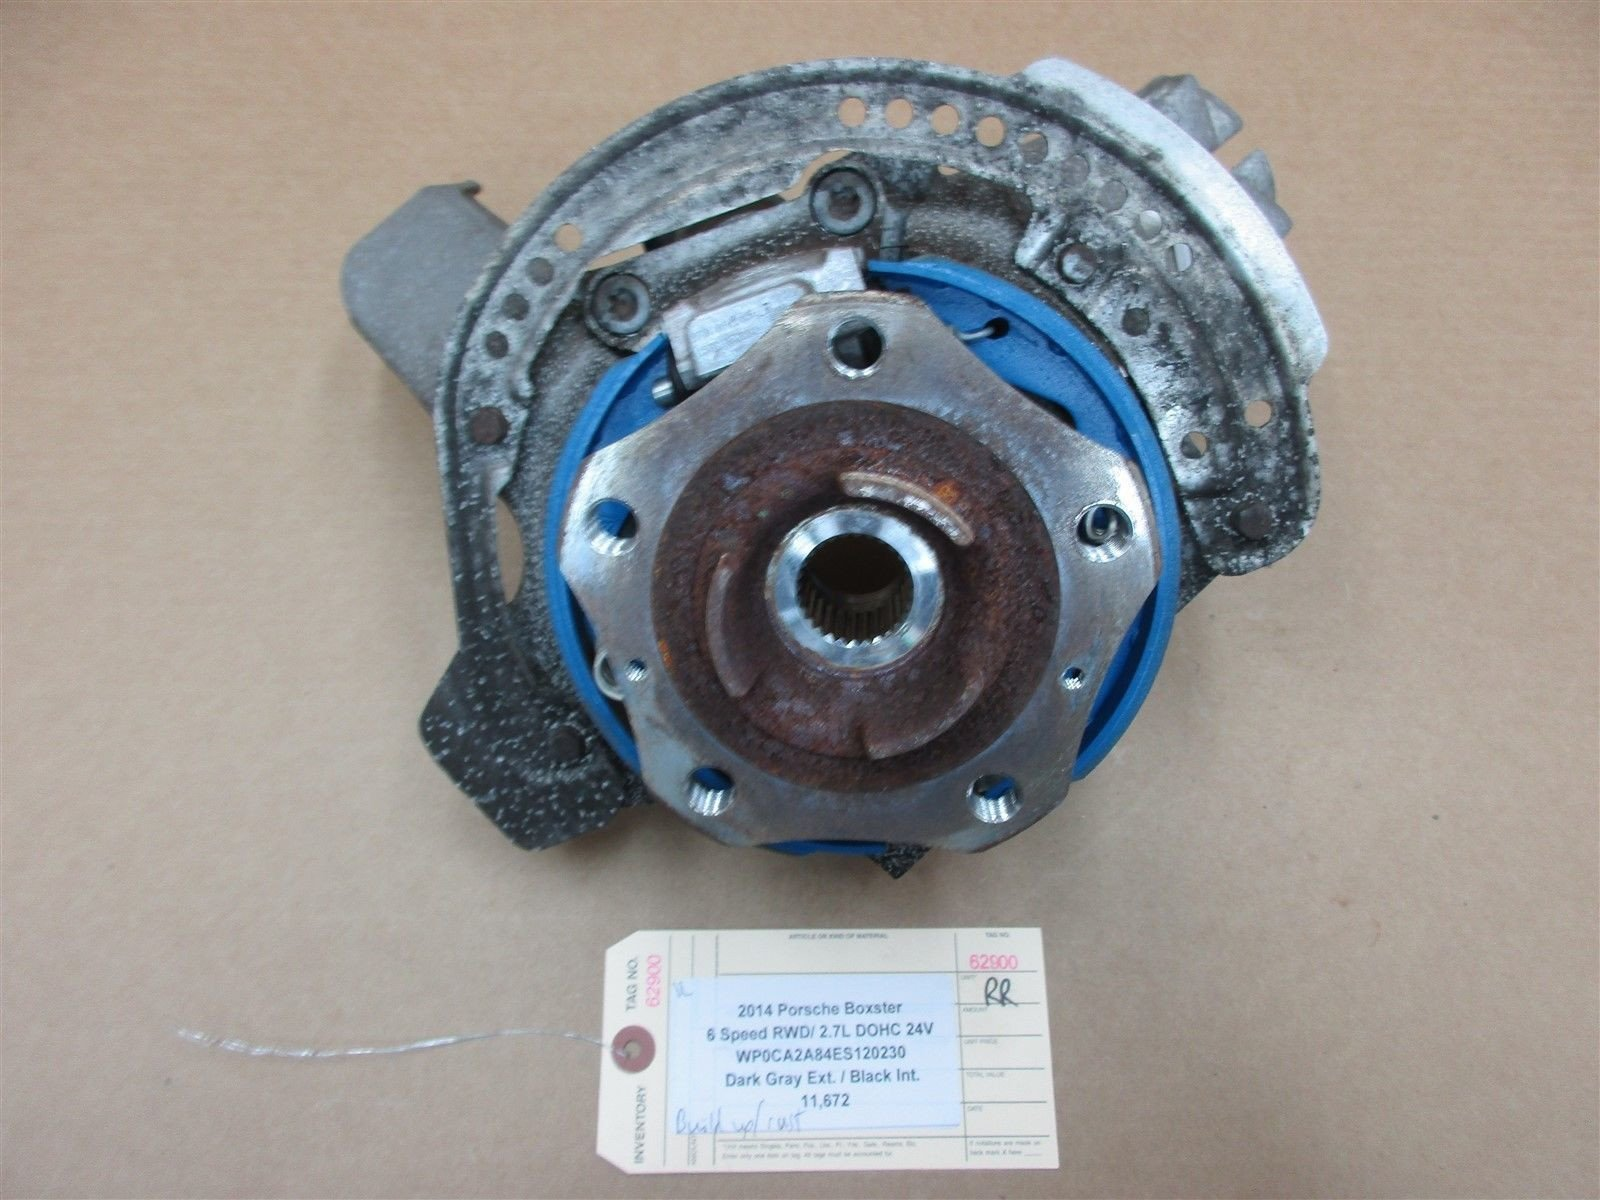 14 Boxster RWD Porsche 981 R REAR HUB + STEERING KNUCKLE 98133185807 11,672